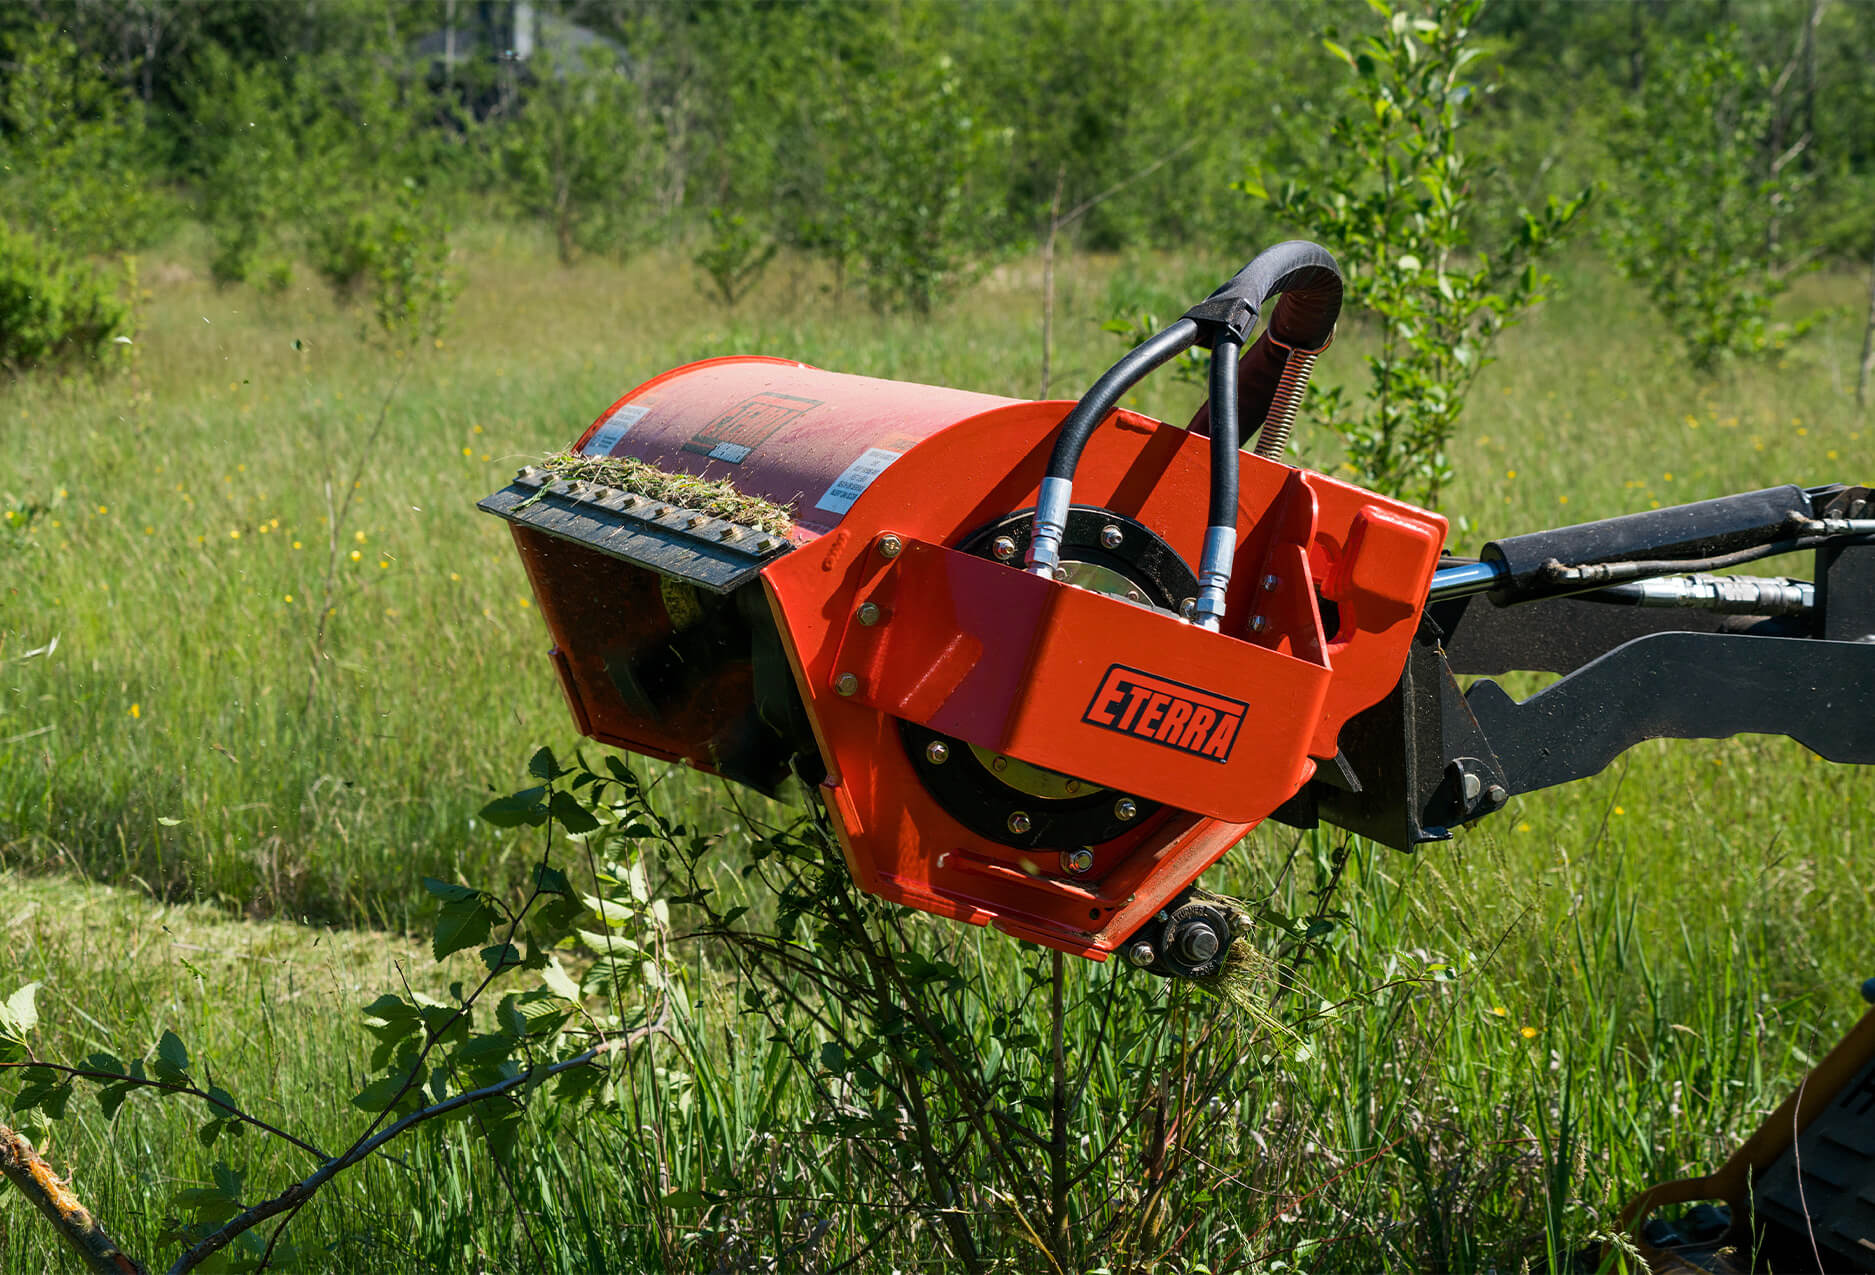 Eterra Sidewinder mini Skid Steer flail mower side angle closeup